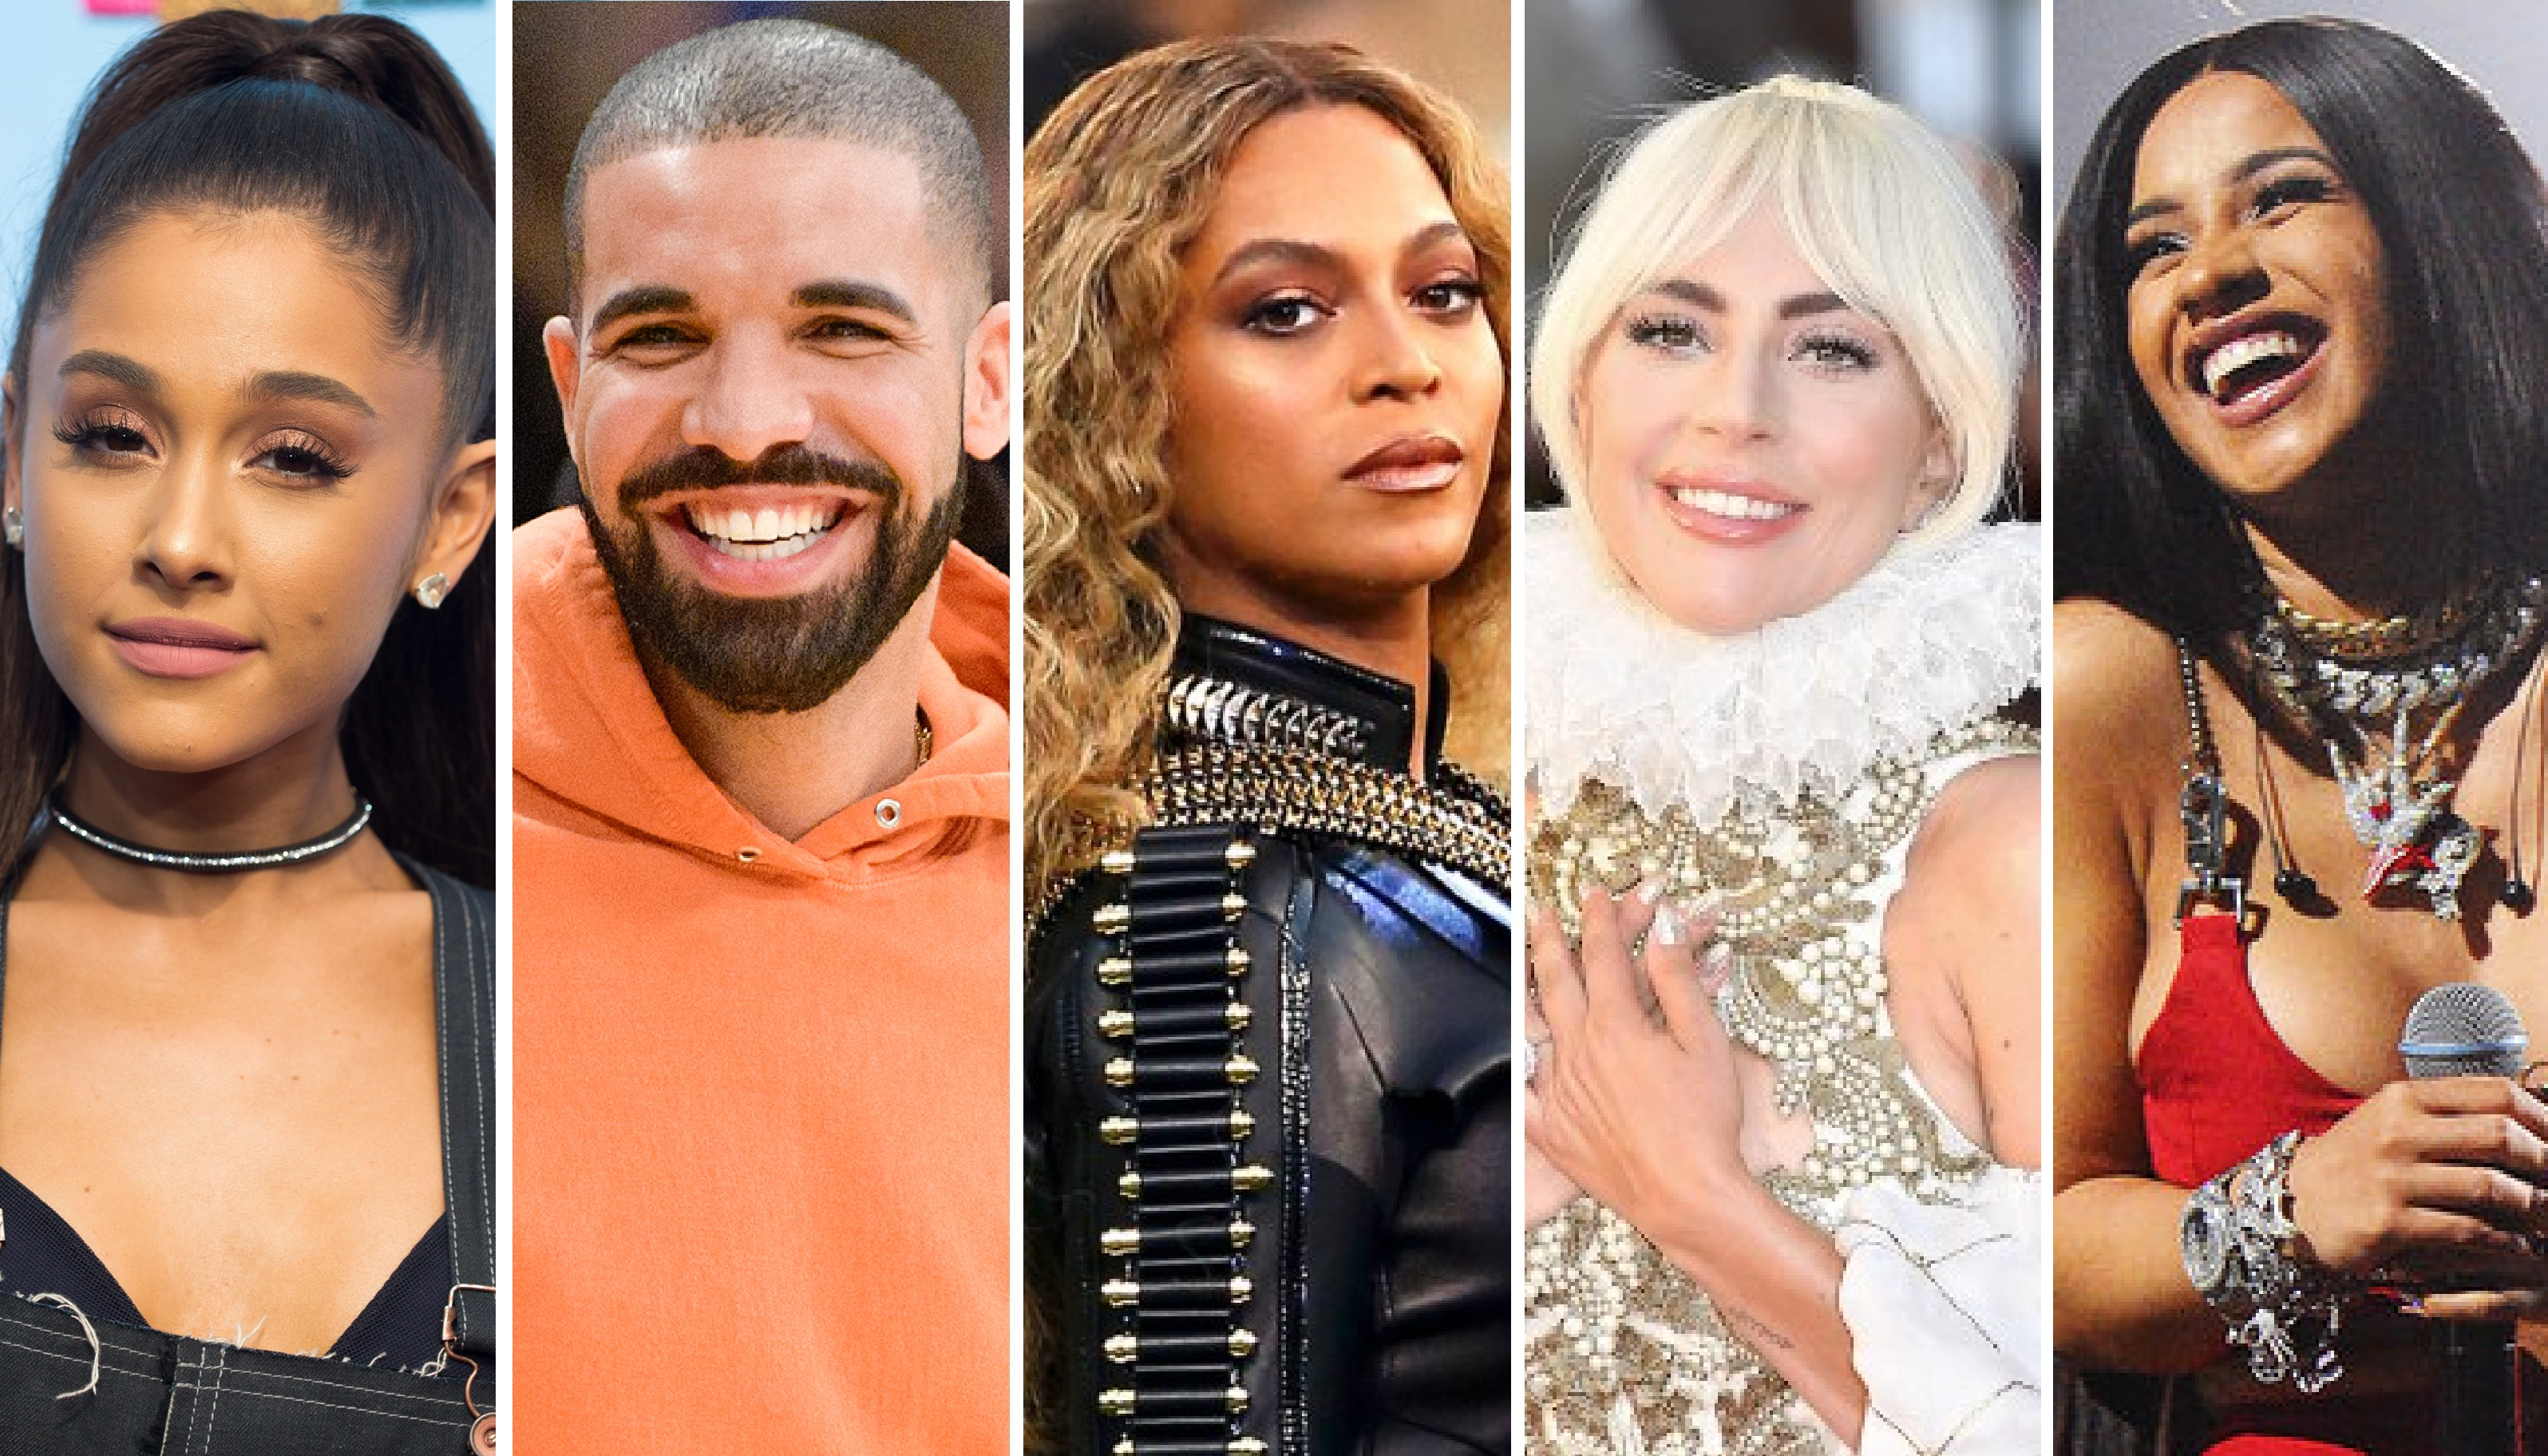 Poll: Who Should Be Named 'Artist Of The Year' for 2018? Vote Here!